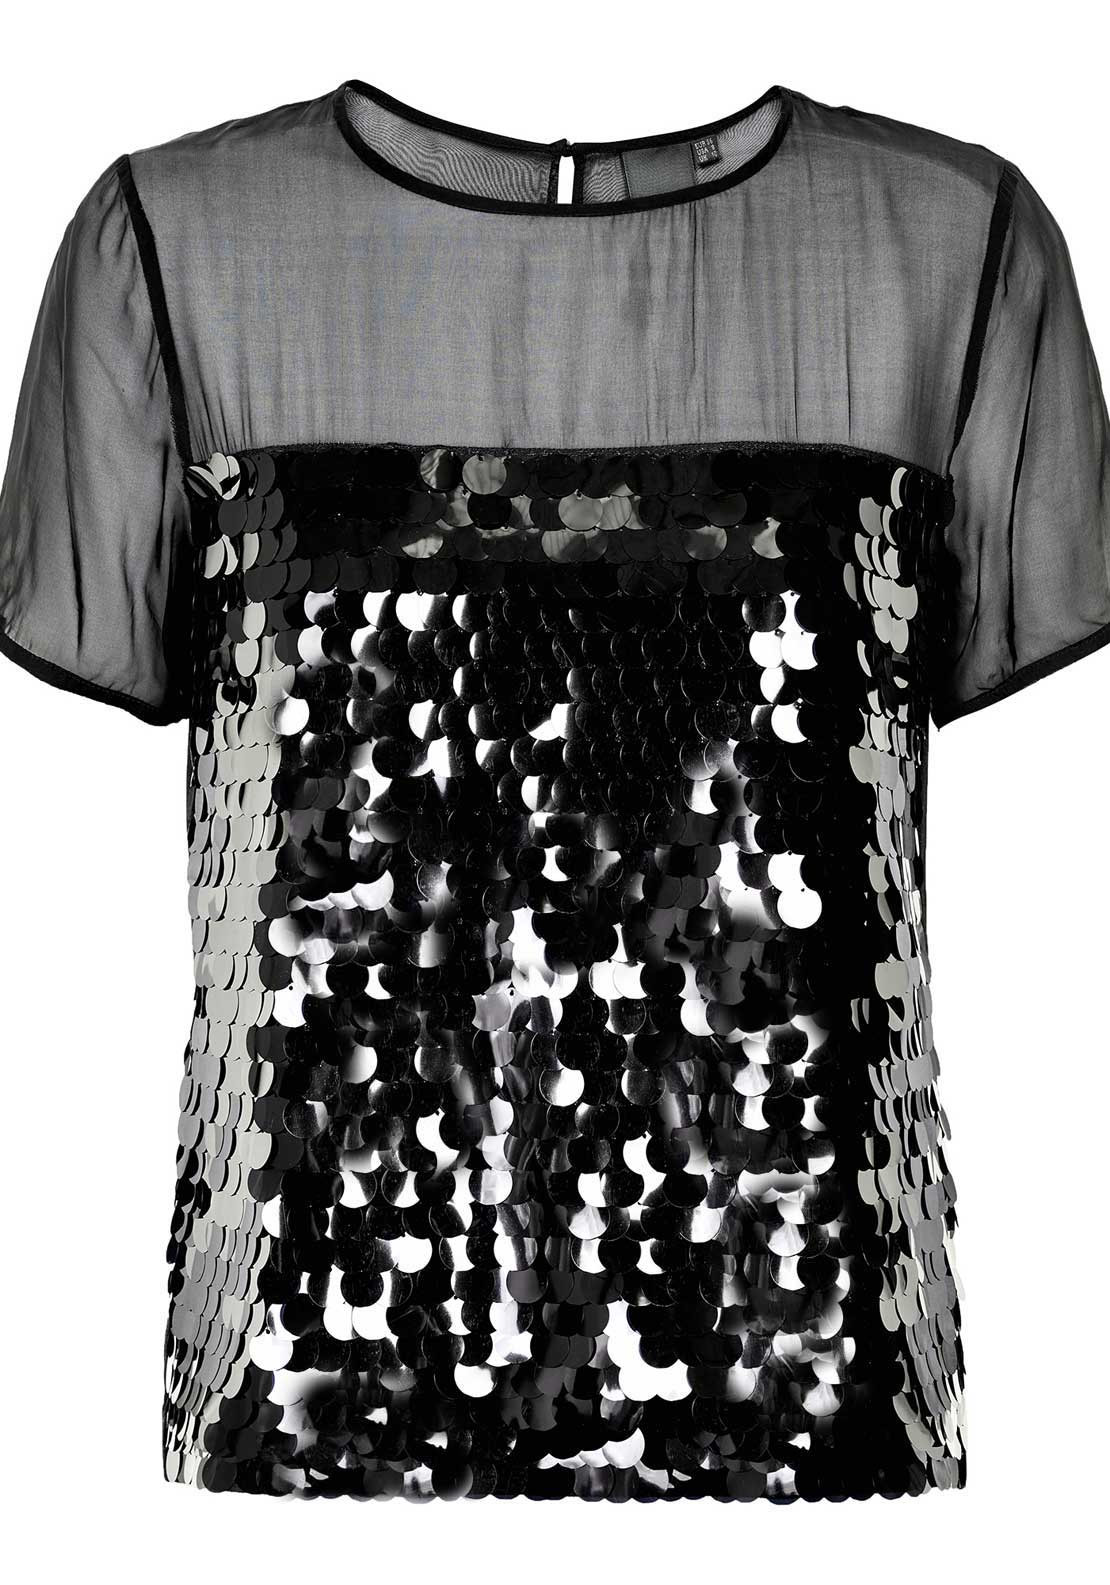 Inwear Annie Sequin Embellished Chiffon Short Sleeve Top, Black